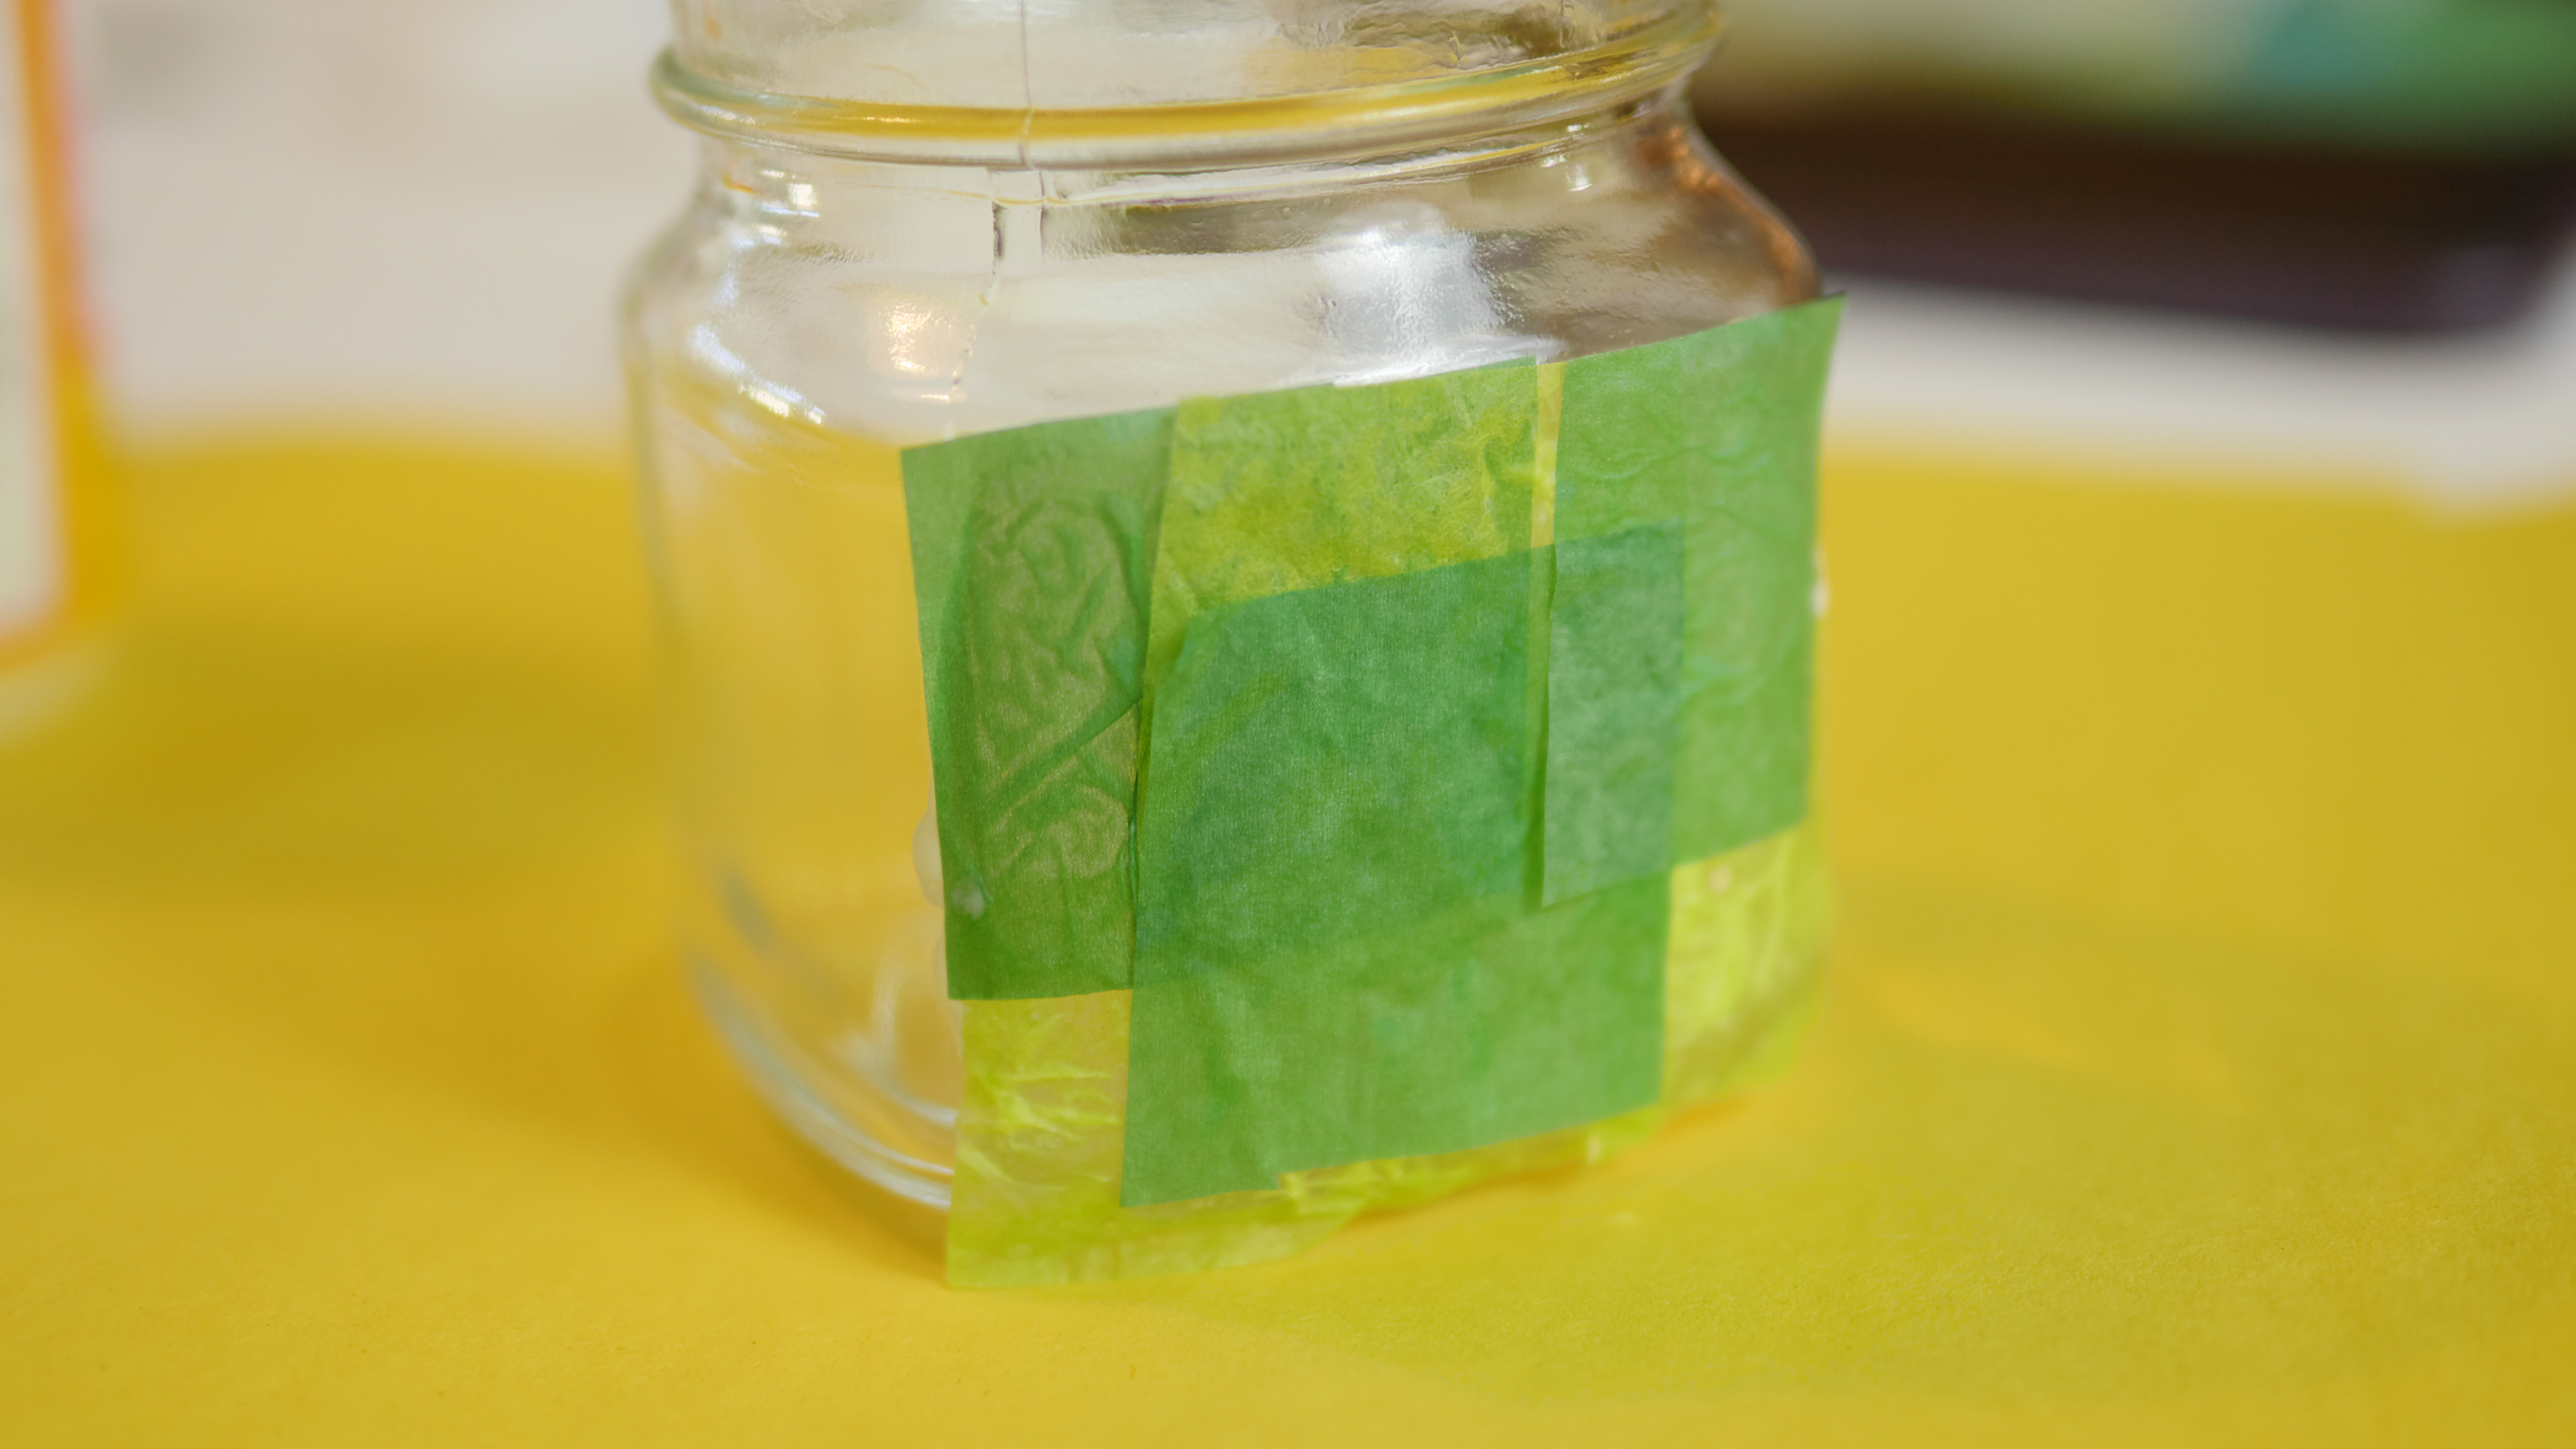 By re-using your old tissue paper, you can make a beautiful St. Patrick's Day candle centerpiece for your table. Work in small sections to make your candle holder look good.